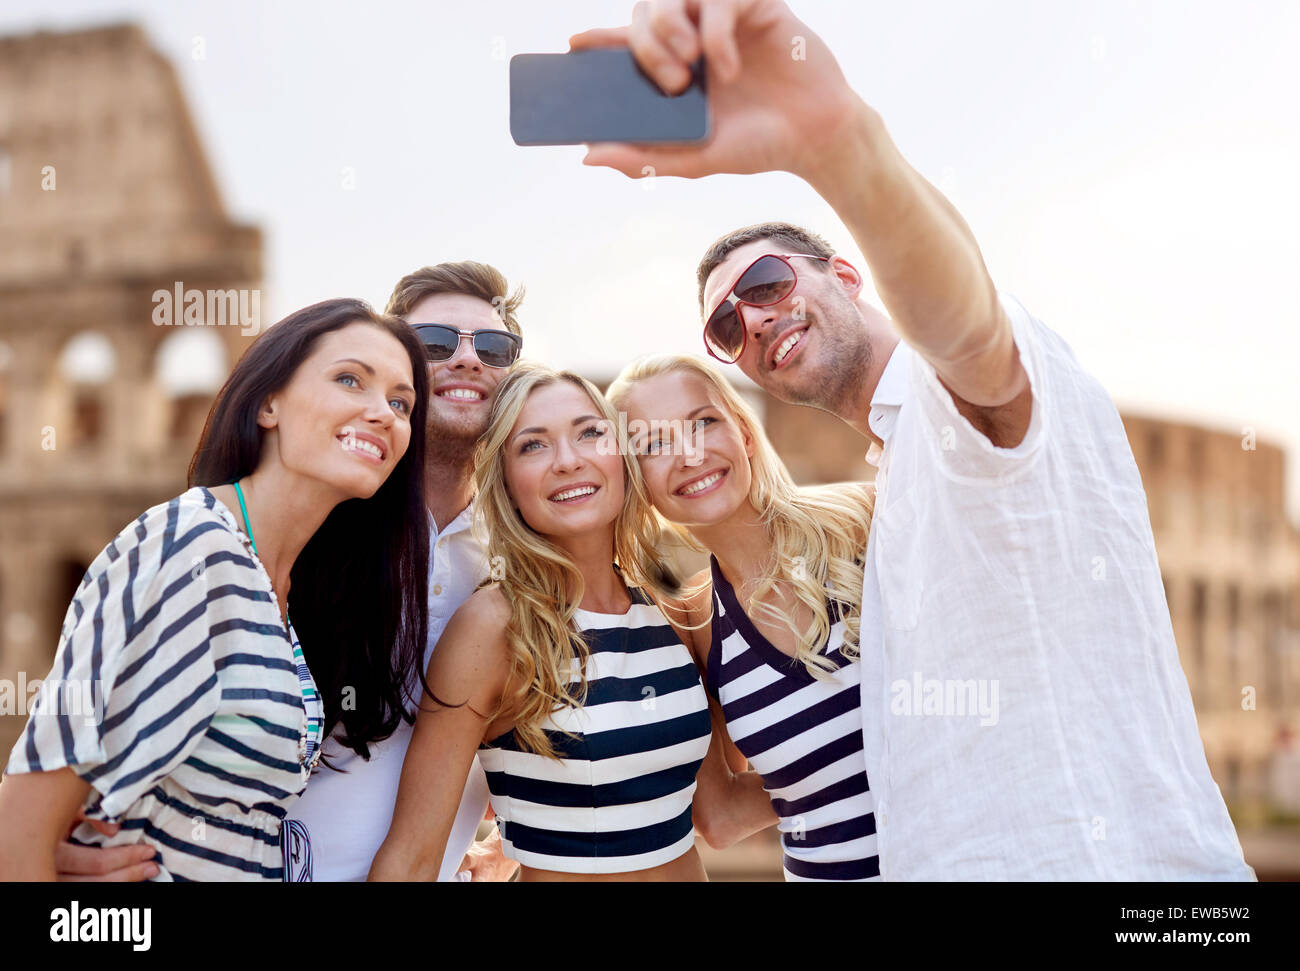 friends taking selfie with smartphone - Stock Image